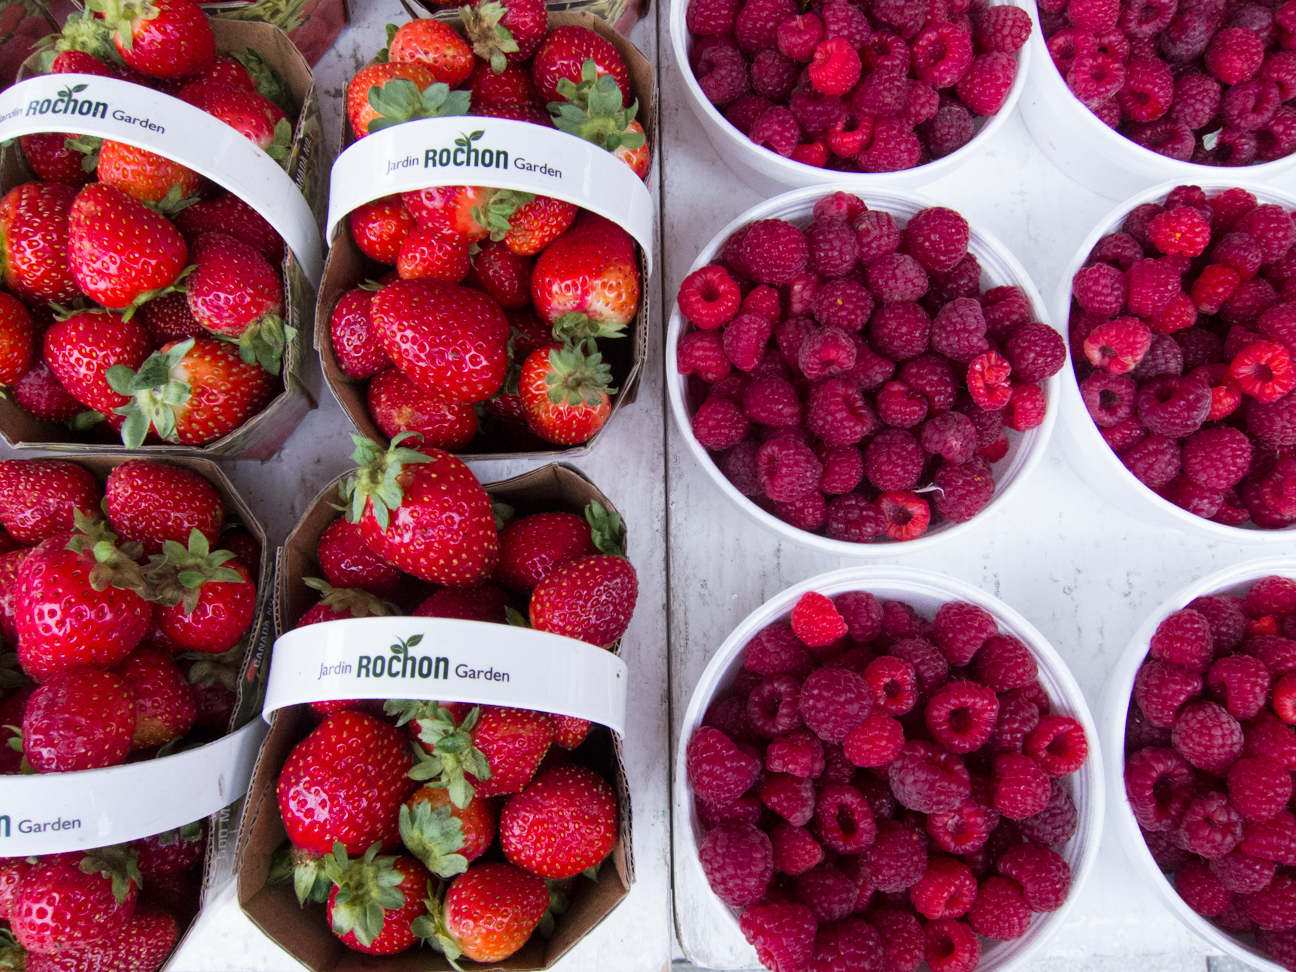 strawberries and raspberries at Ottawa Farmer's Market